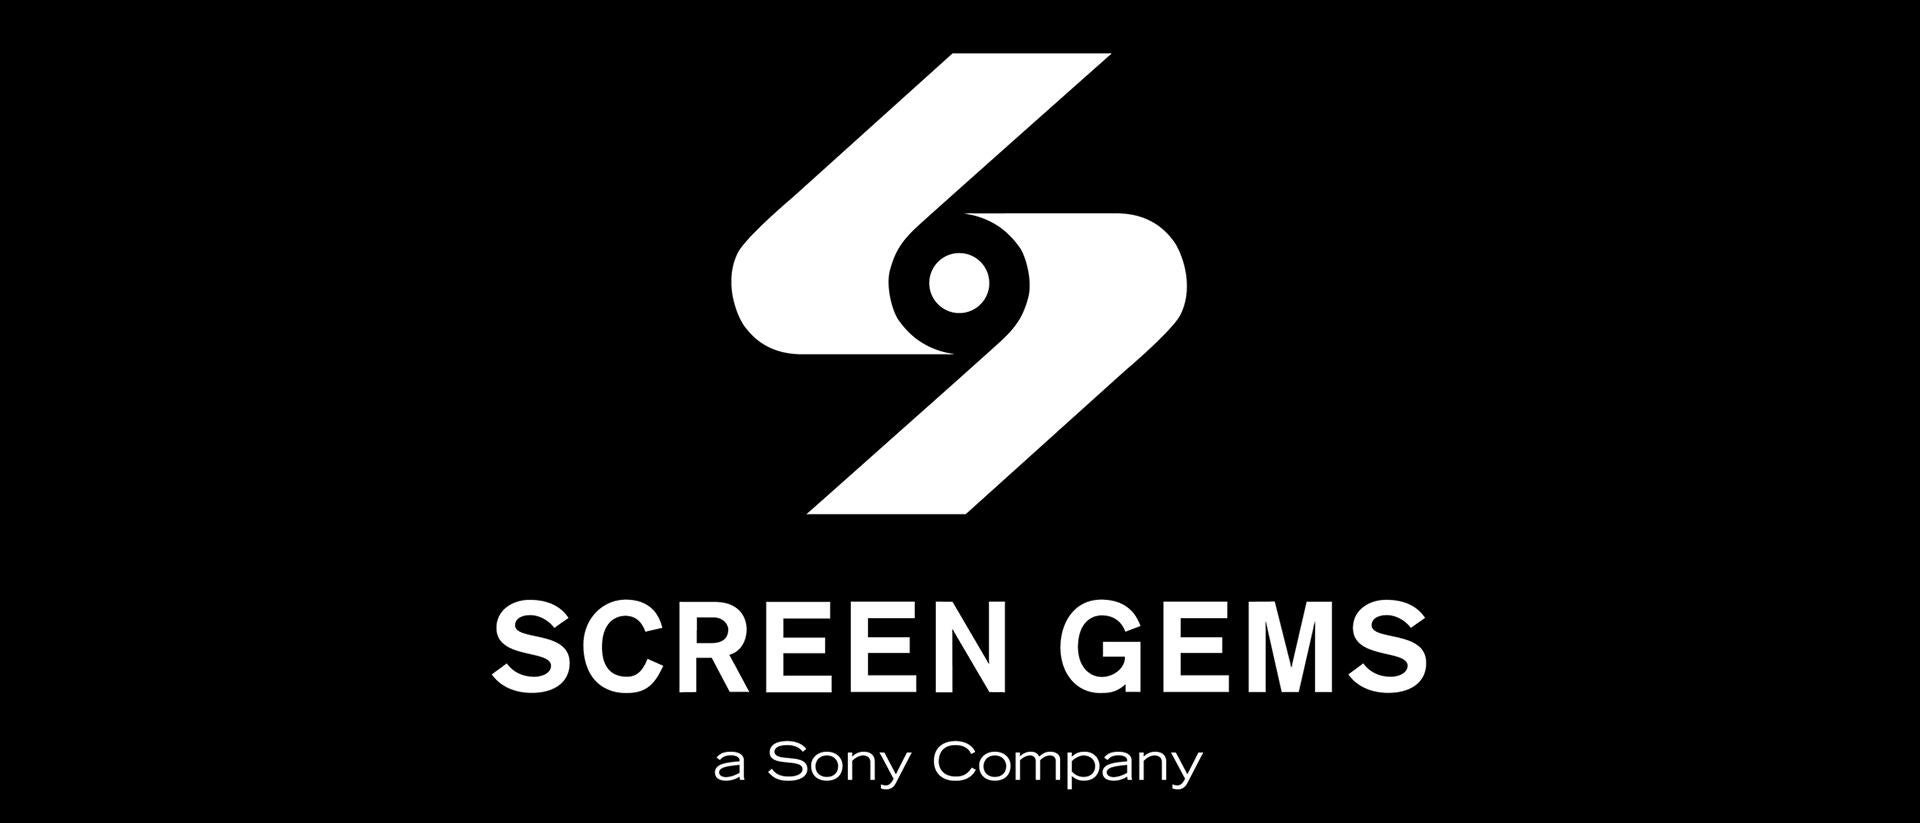 ScreenGemsLogo-1920.jpg